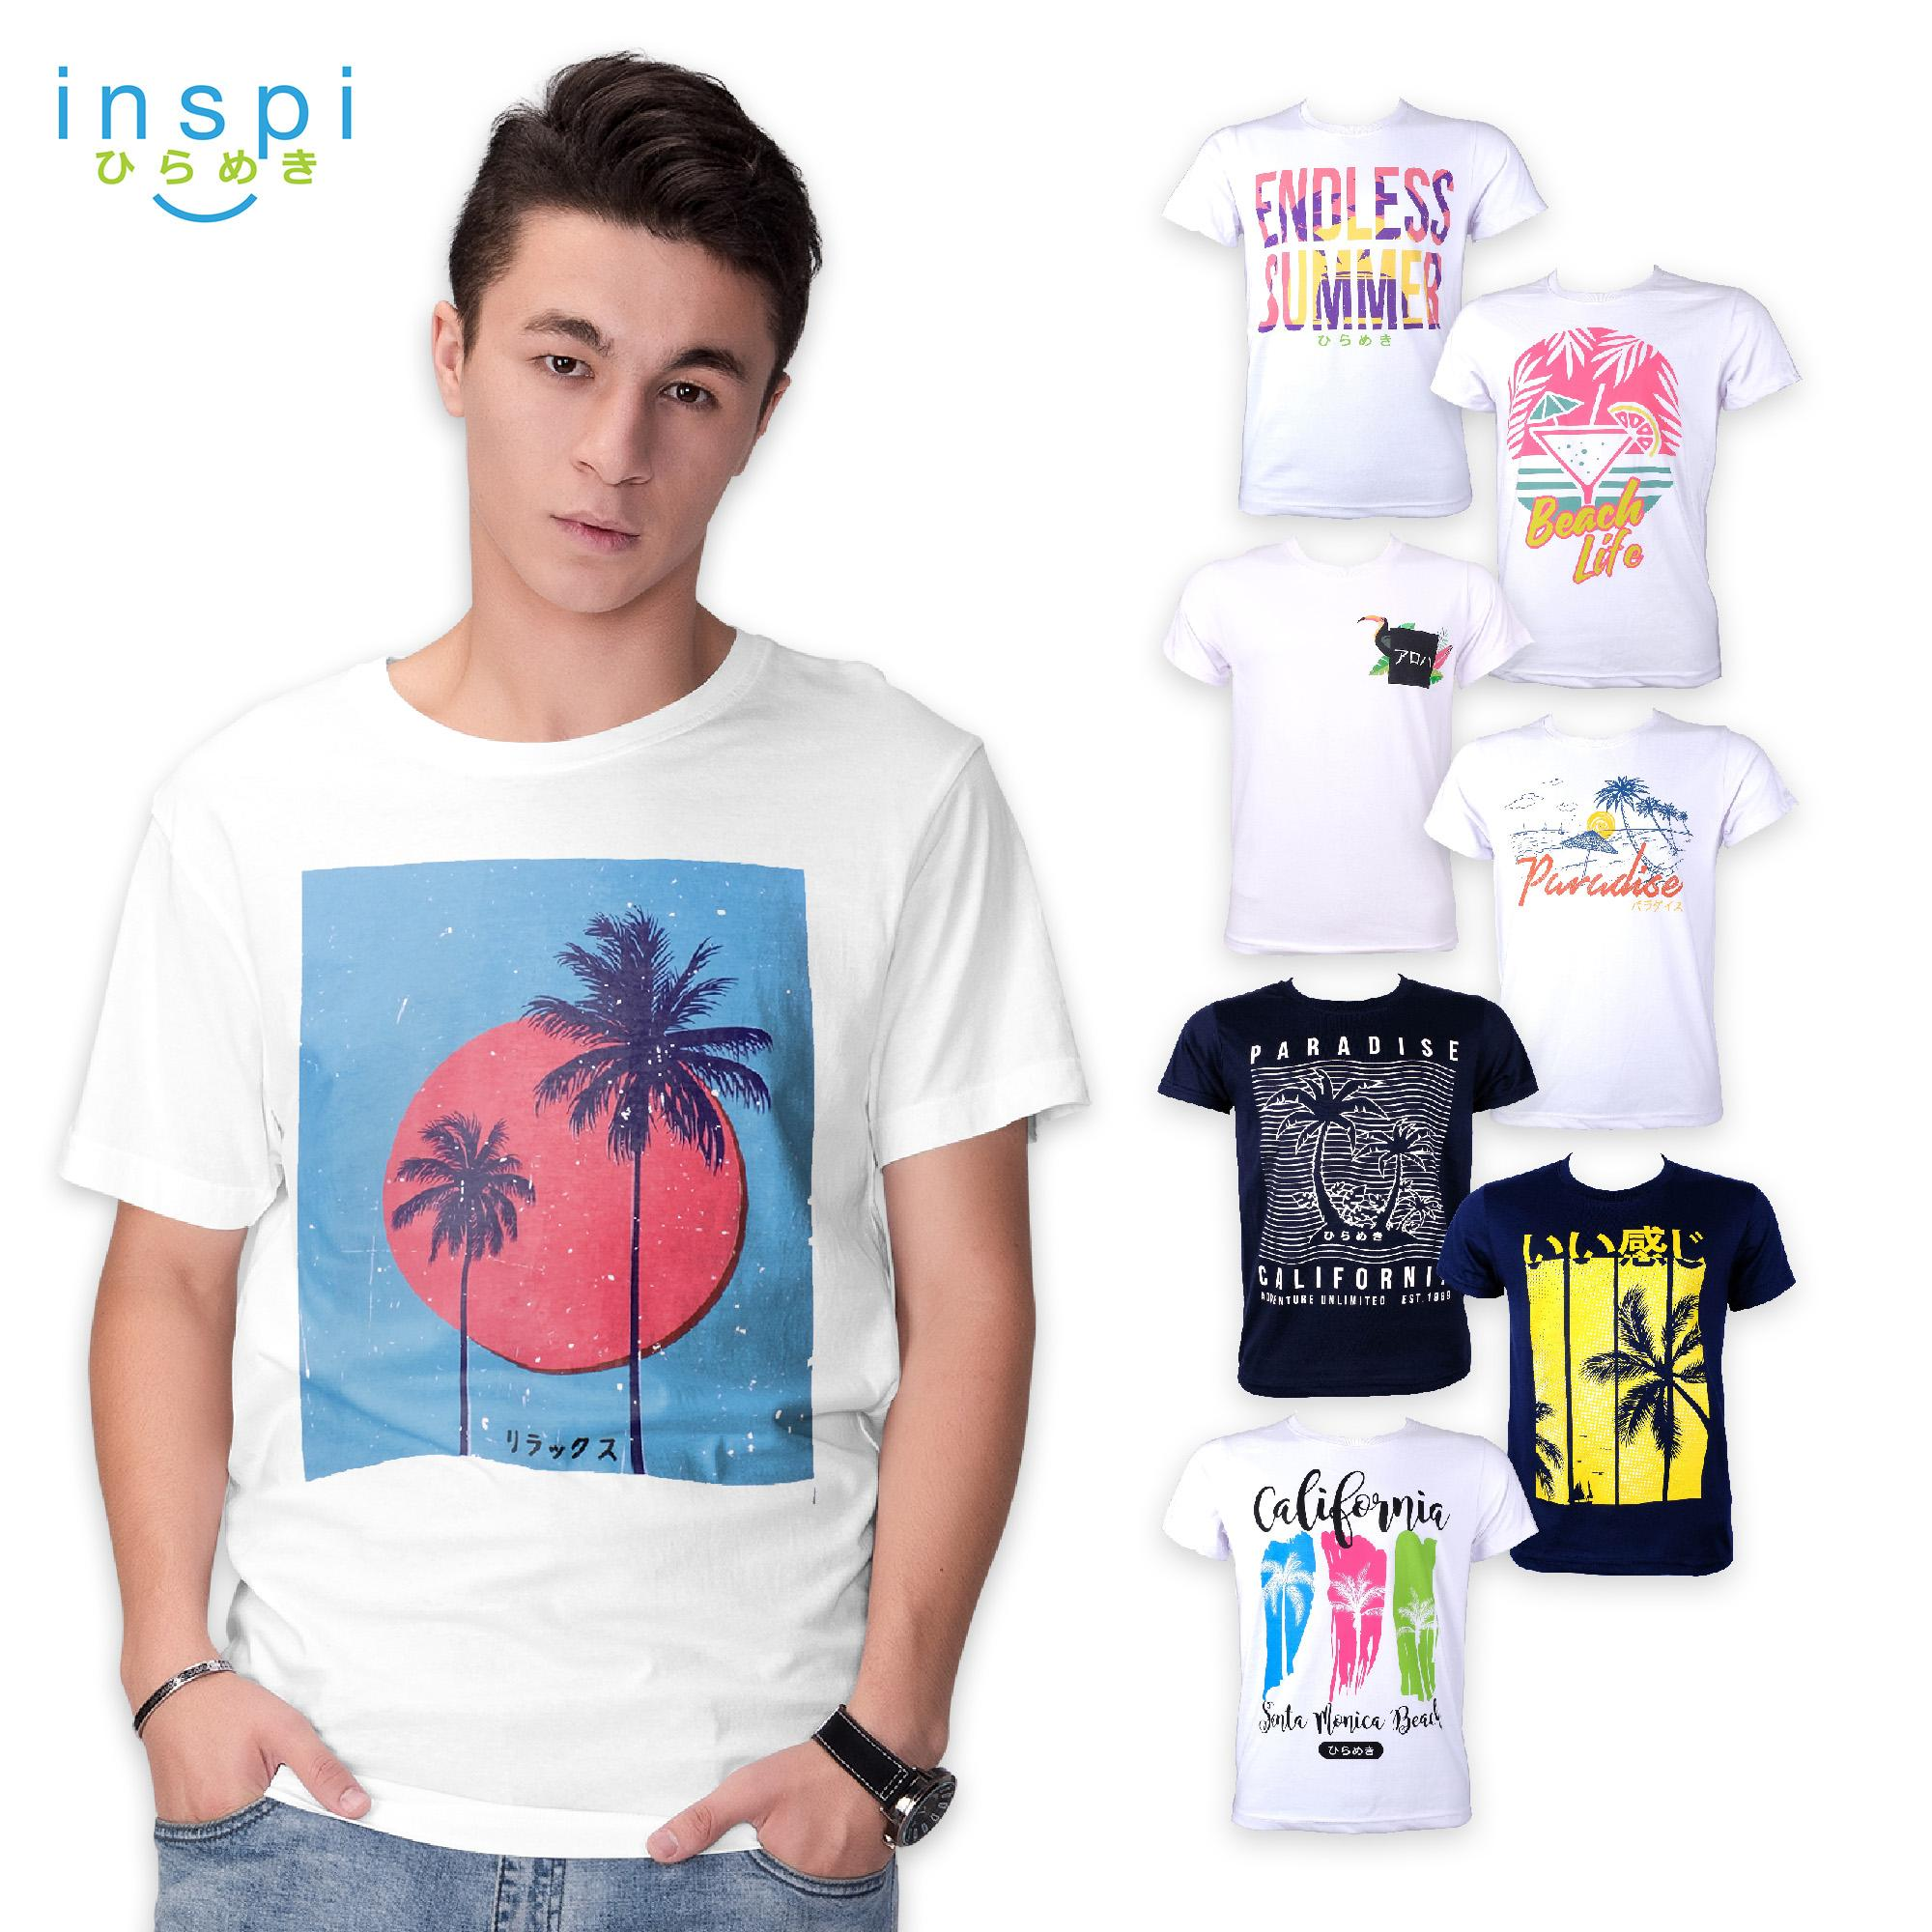 159353f06e50 INSPI Tees Summer Collection tshirt printed graphic tee Mens t shirt shirts  for men tshirts sale